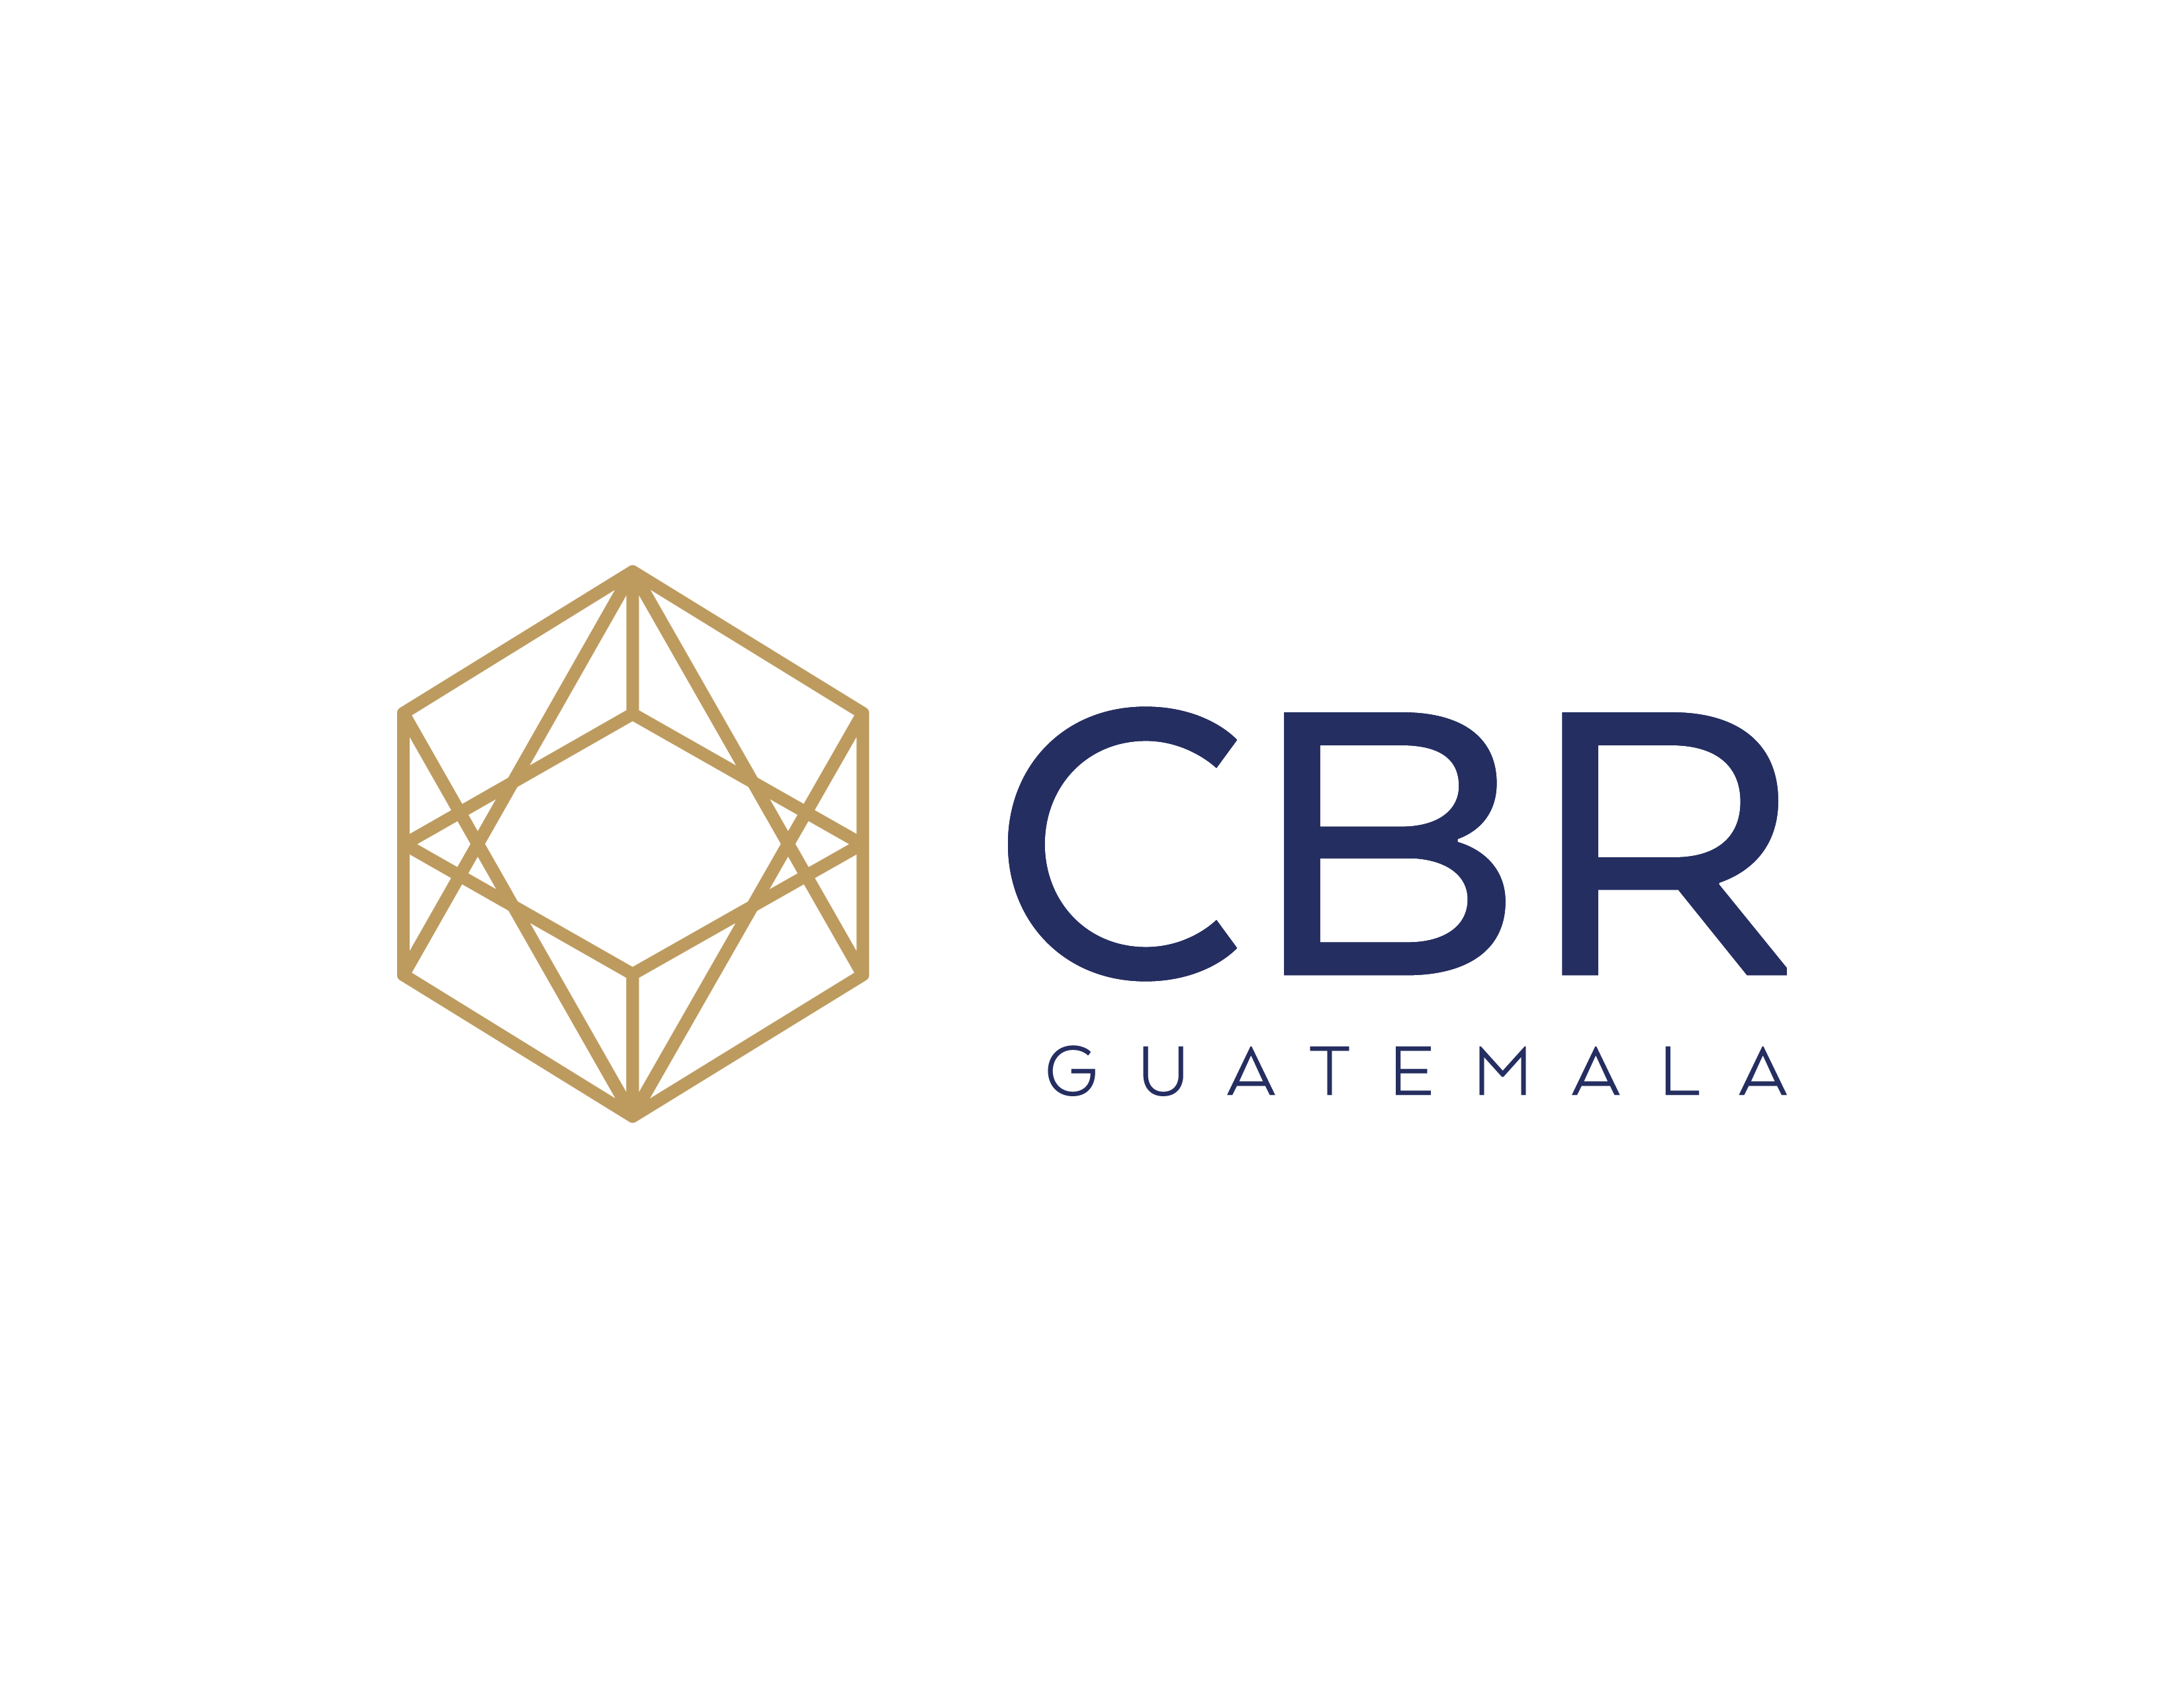 Logotipo_CBR_vertical.png